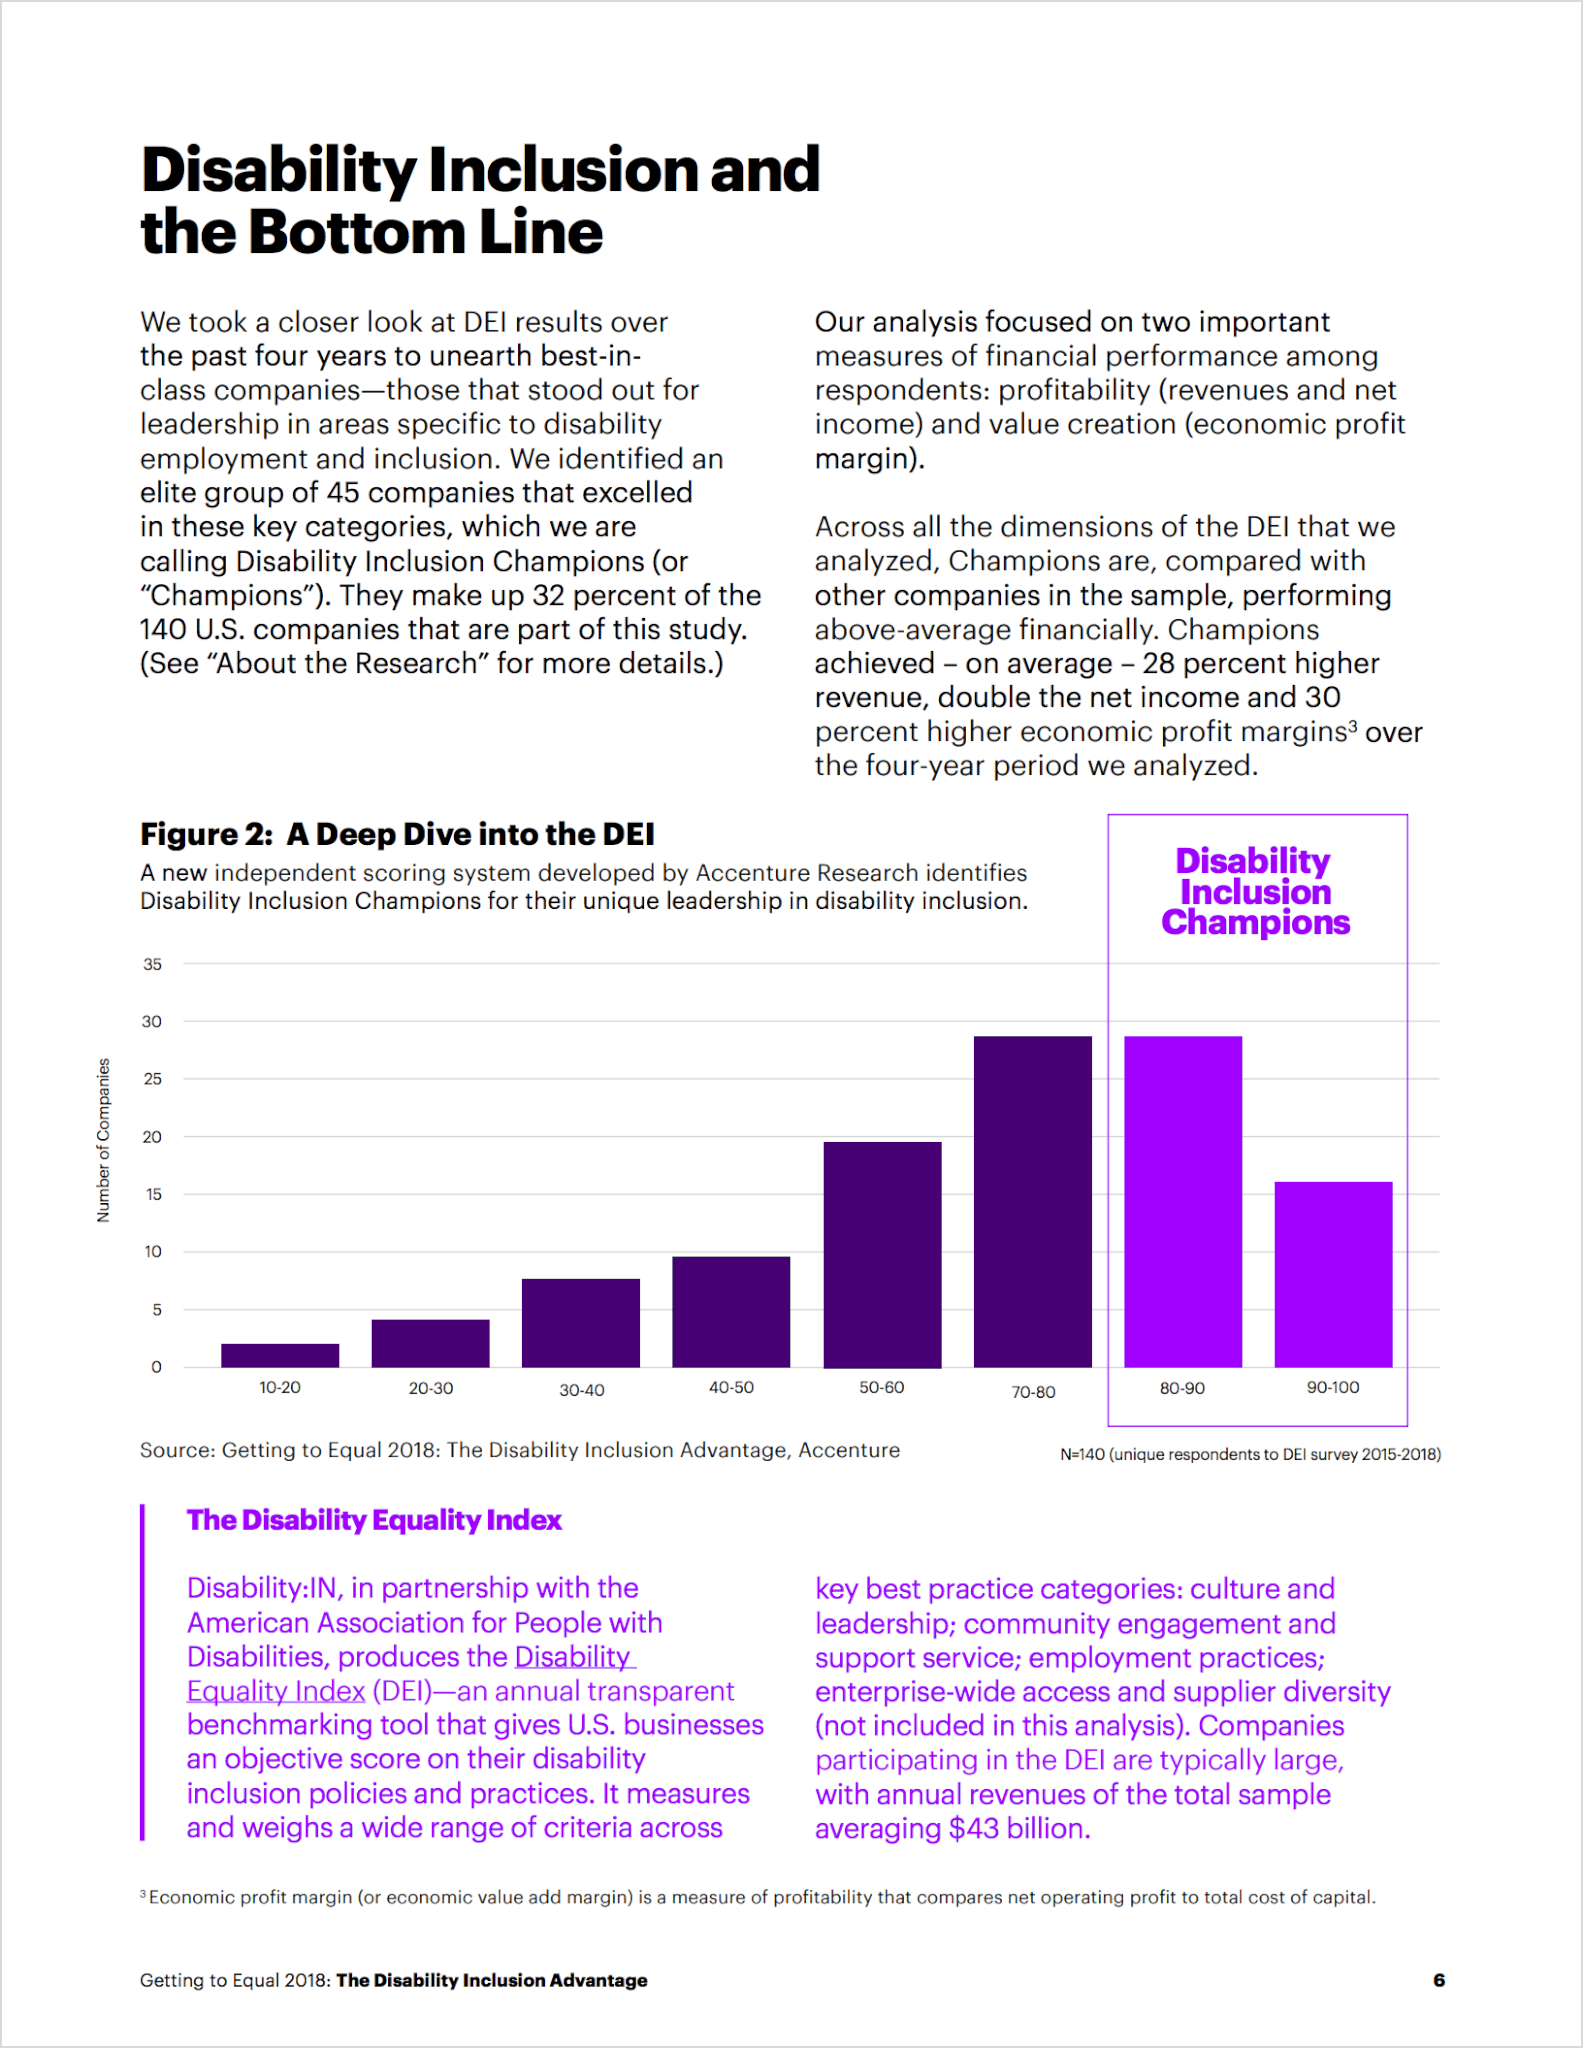 accenture page 5